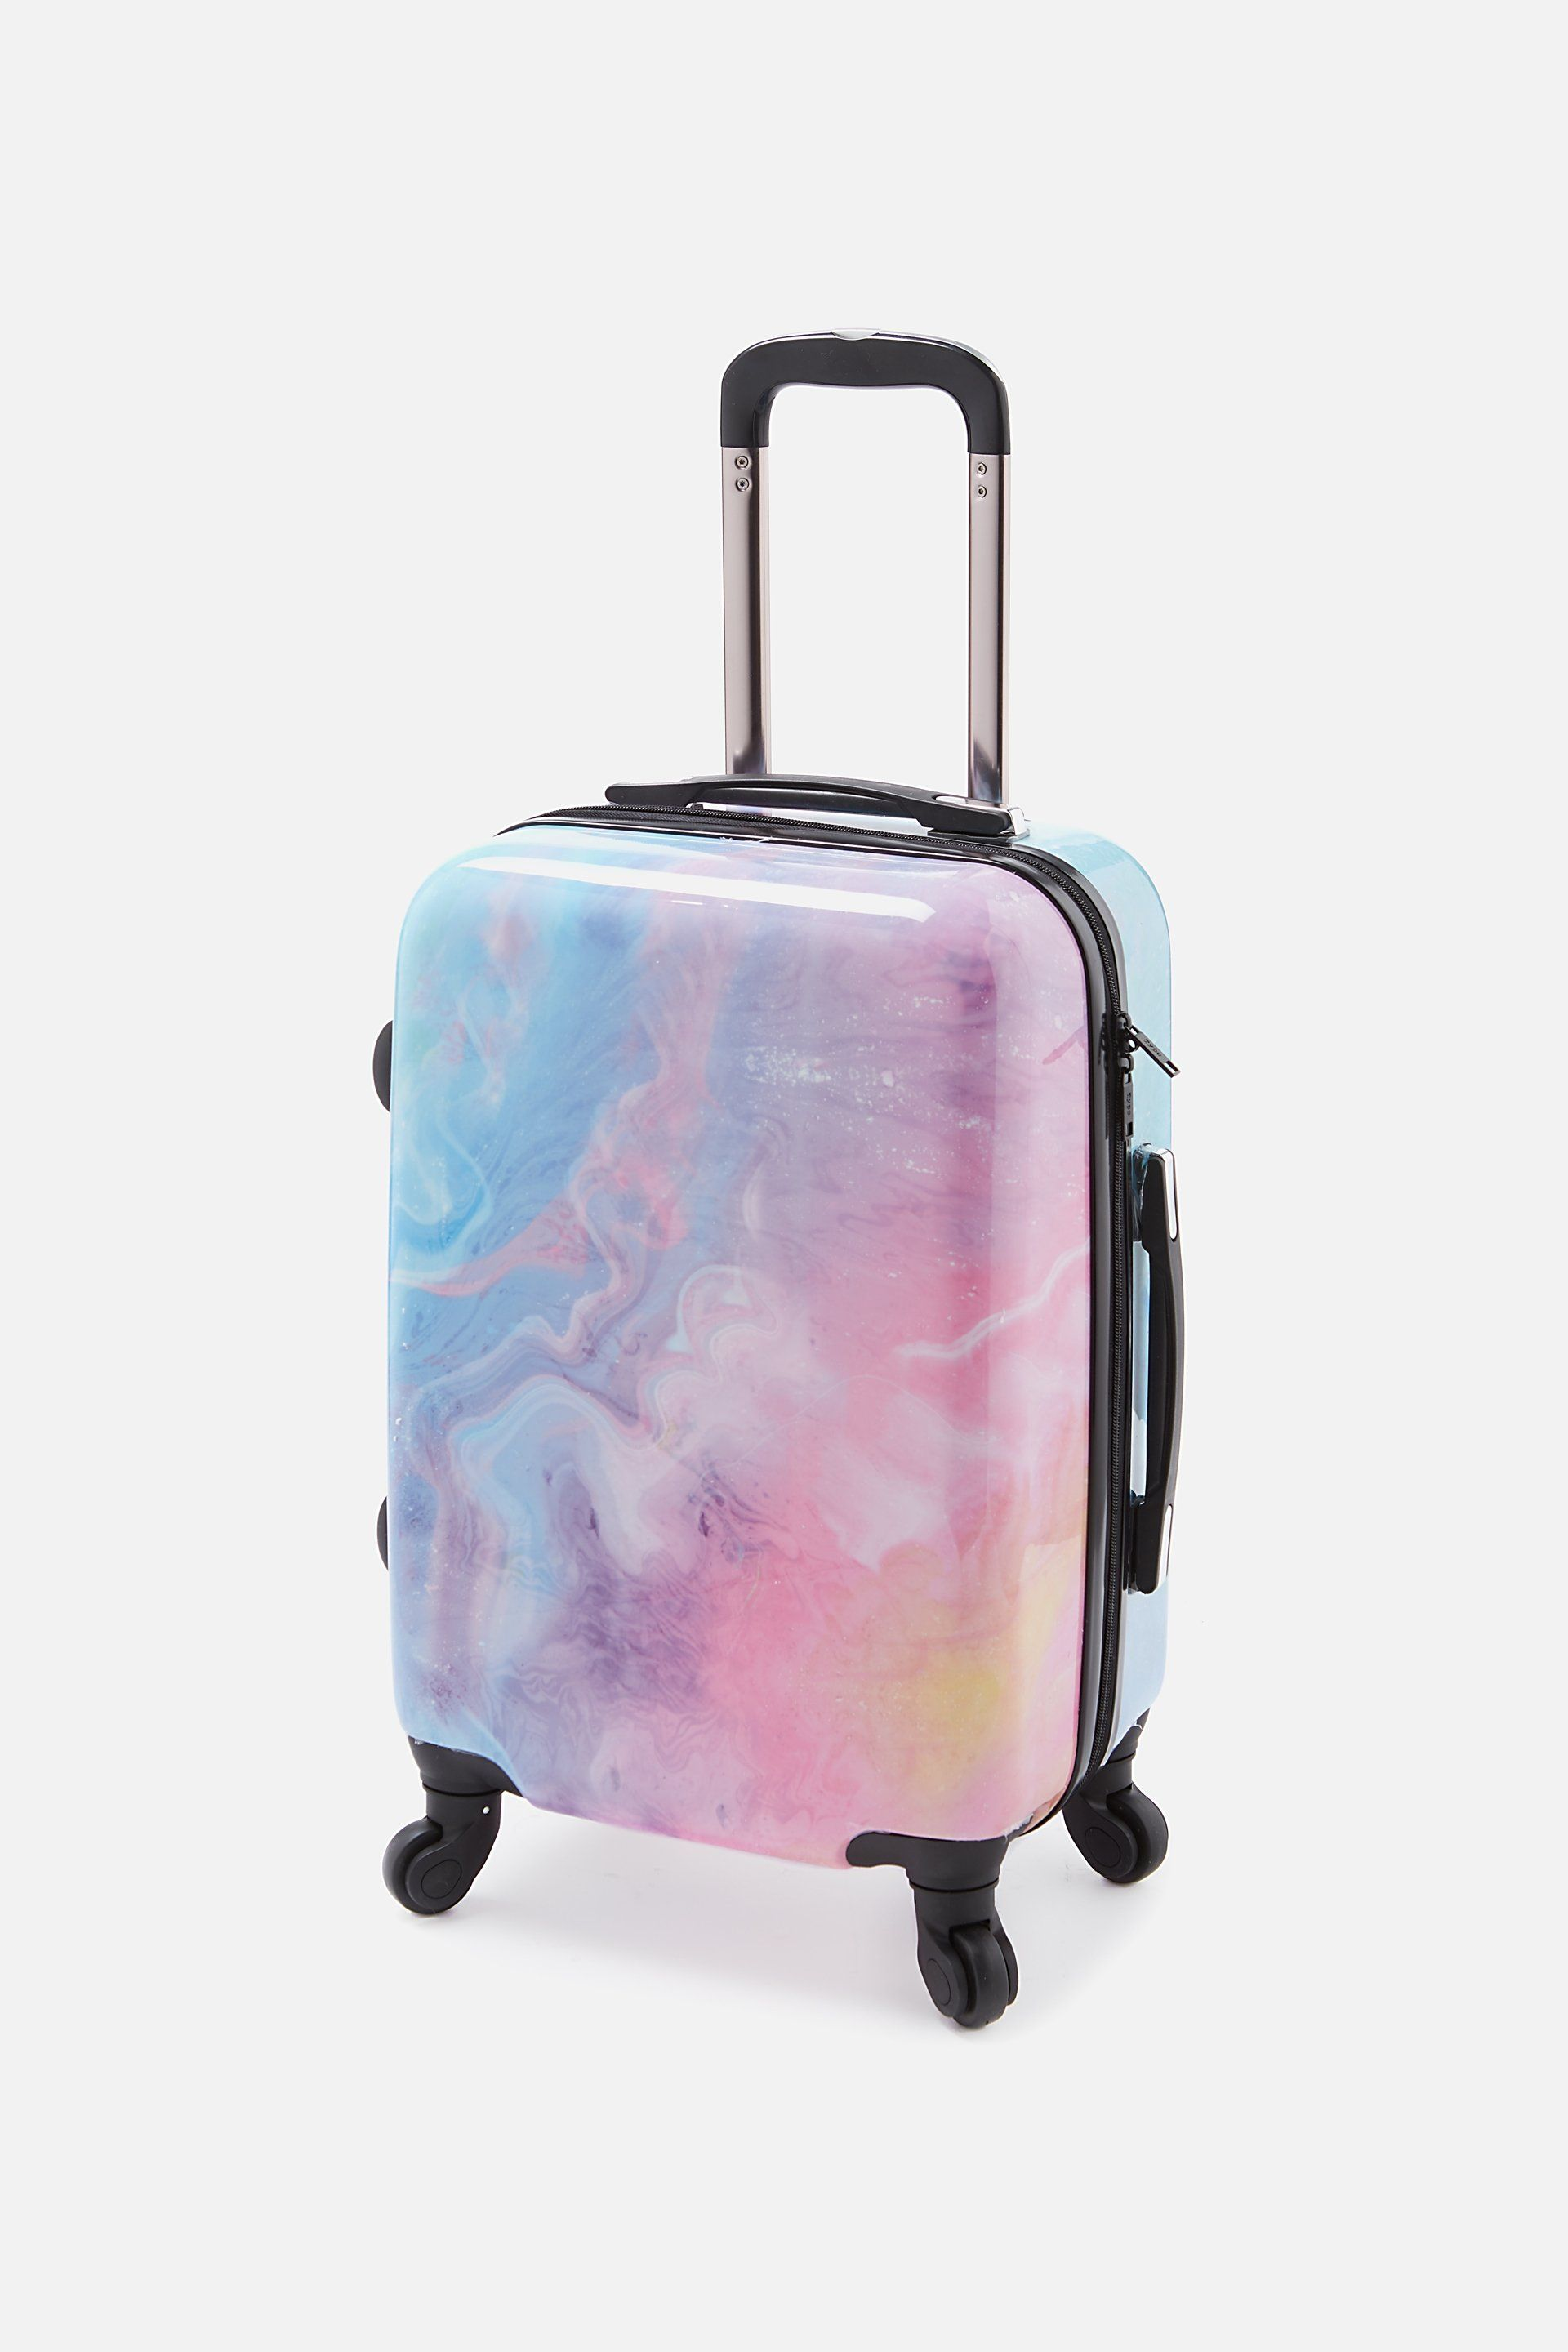 A suitcase i donut have any brand preference or anything but i